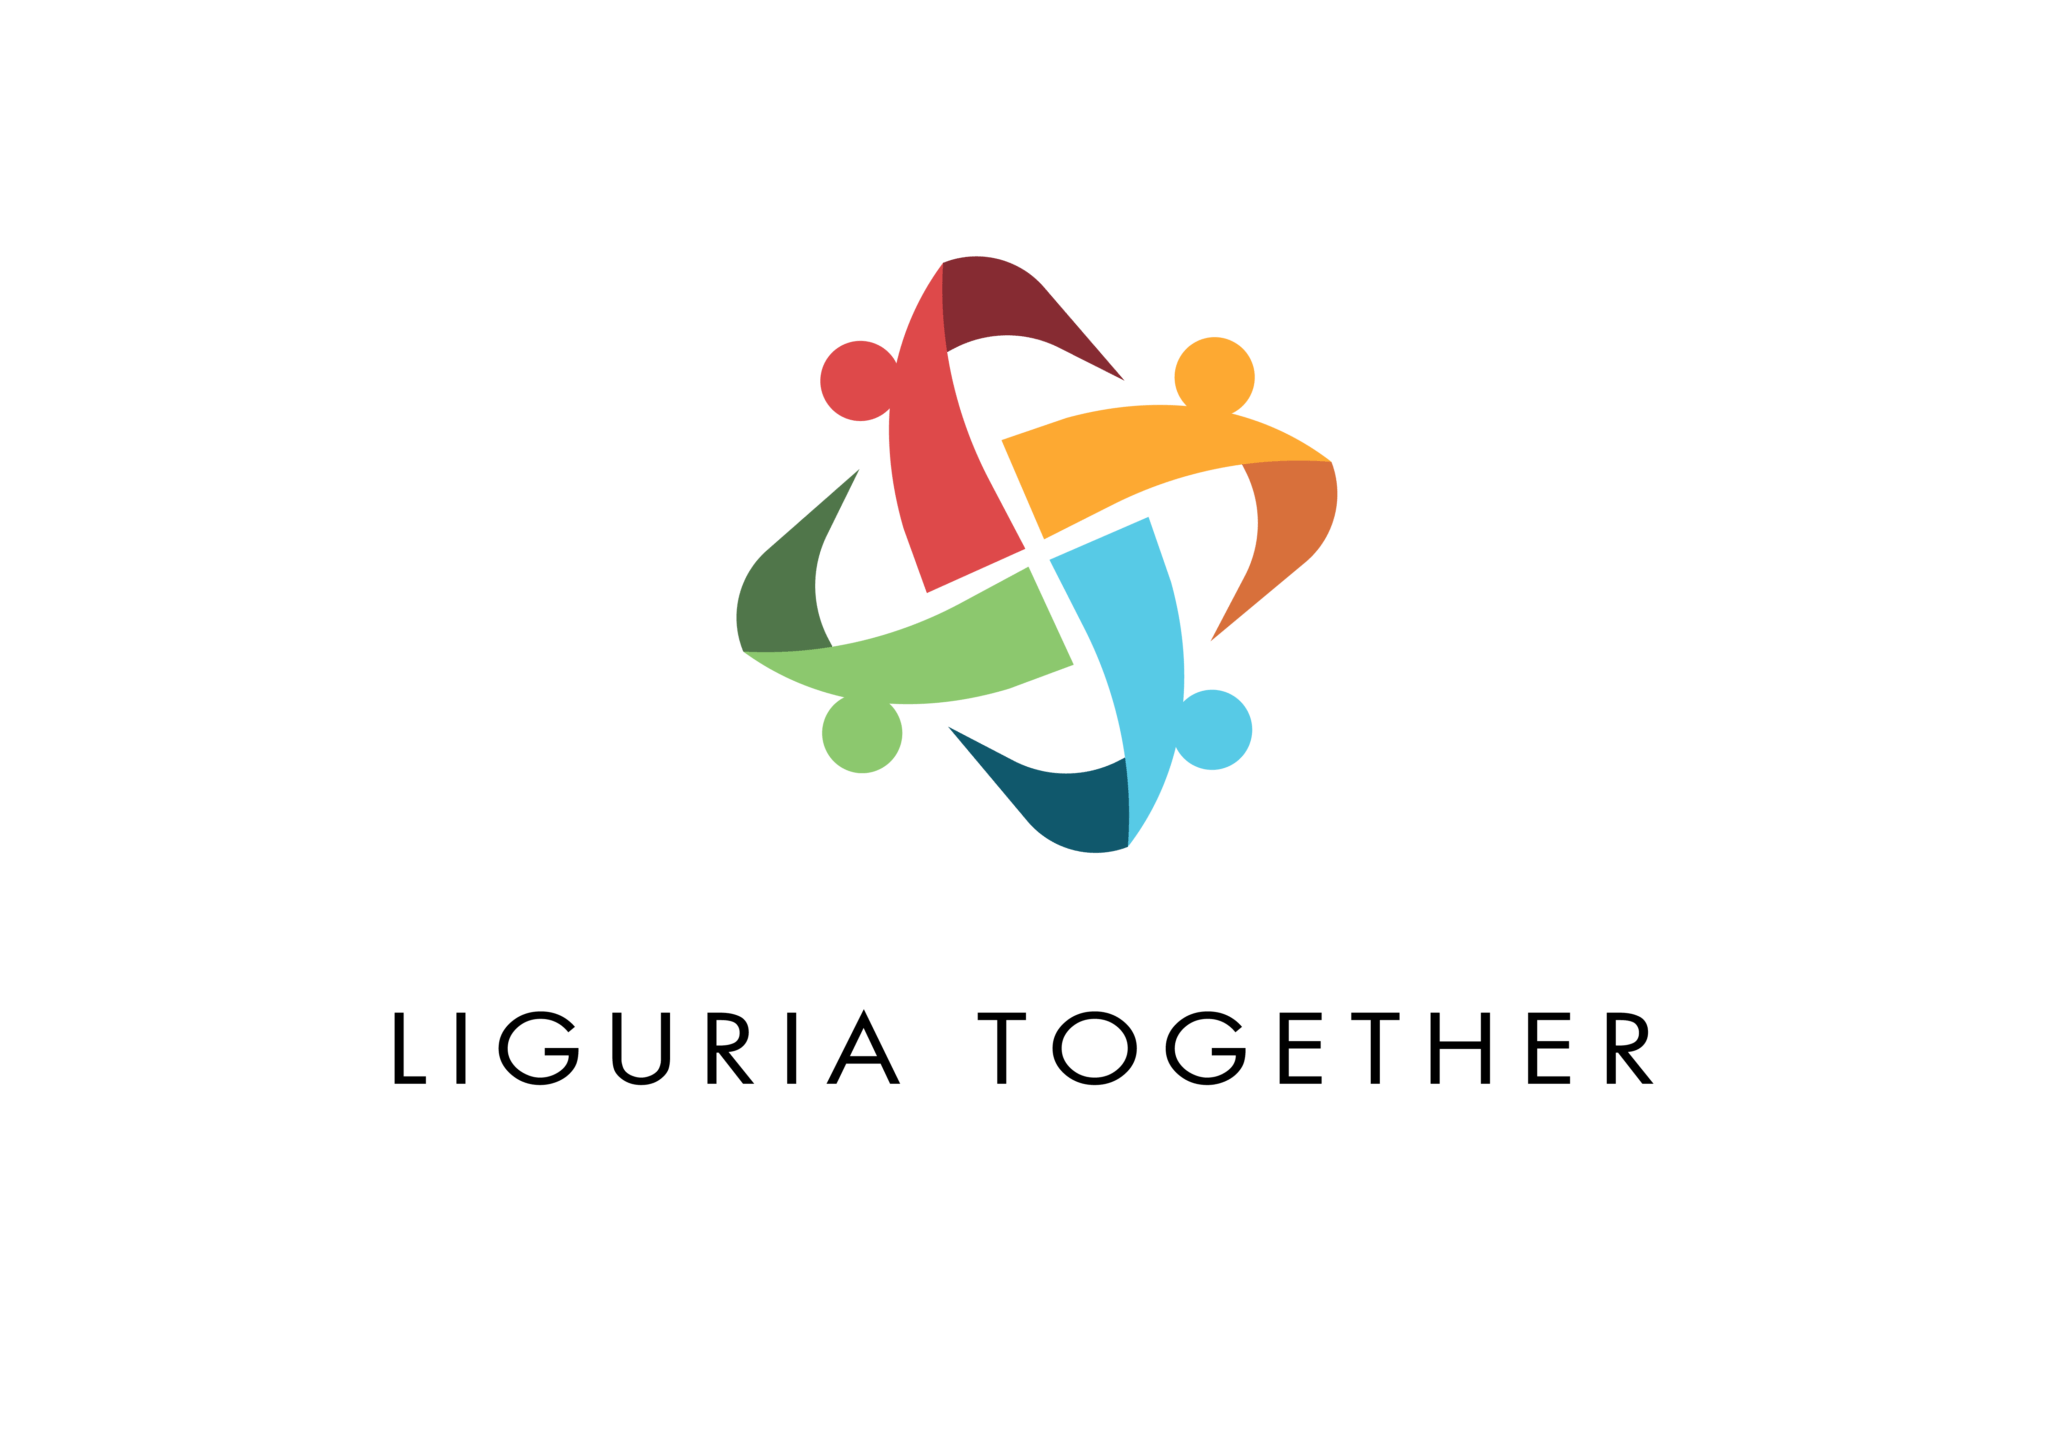 Liguria Together